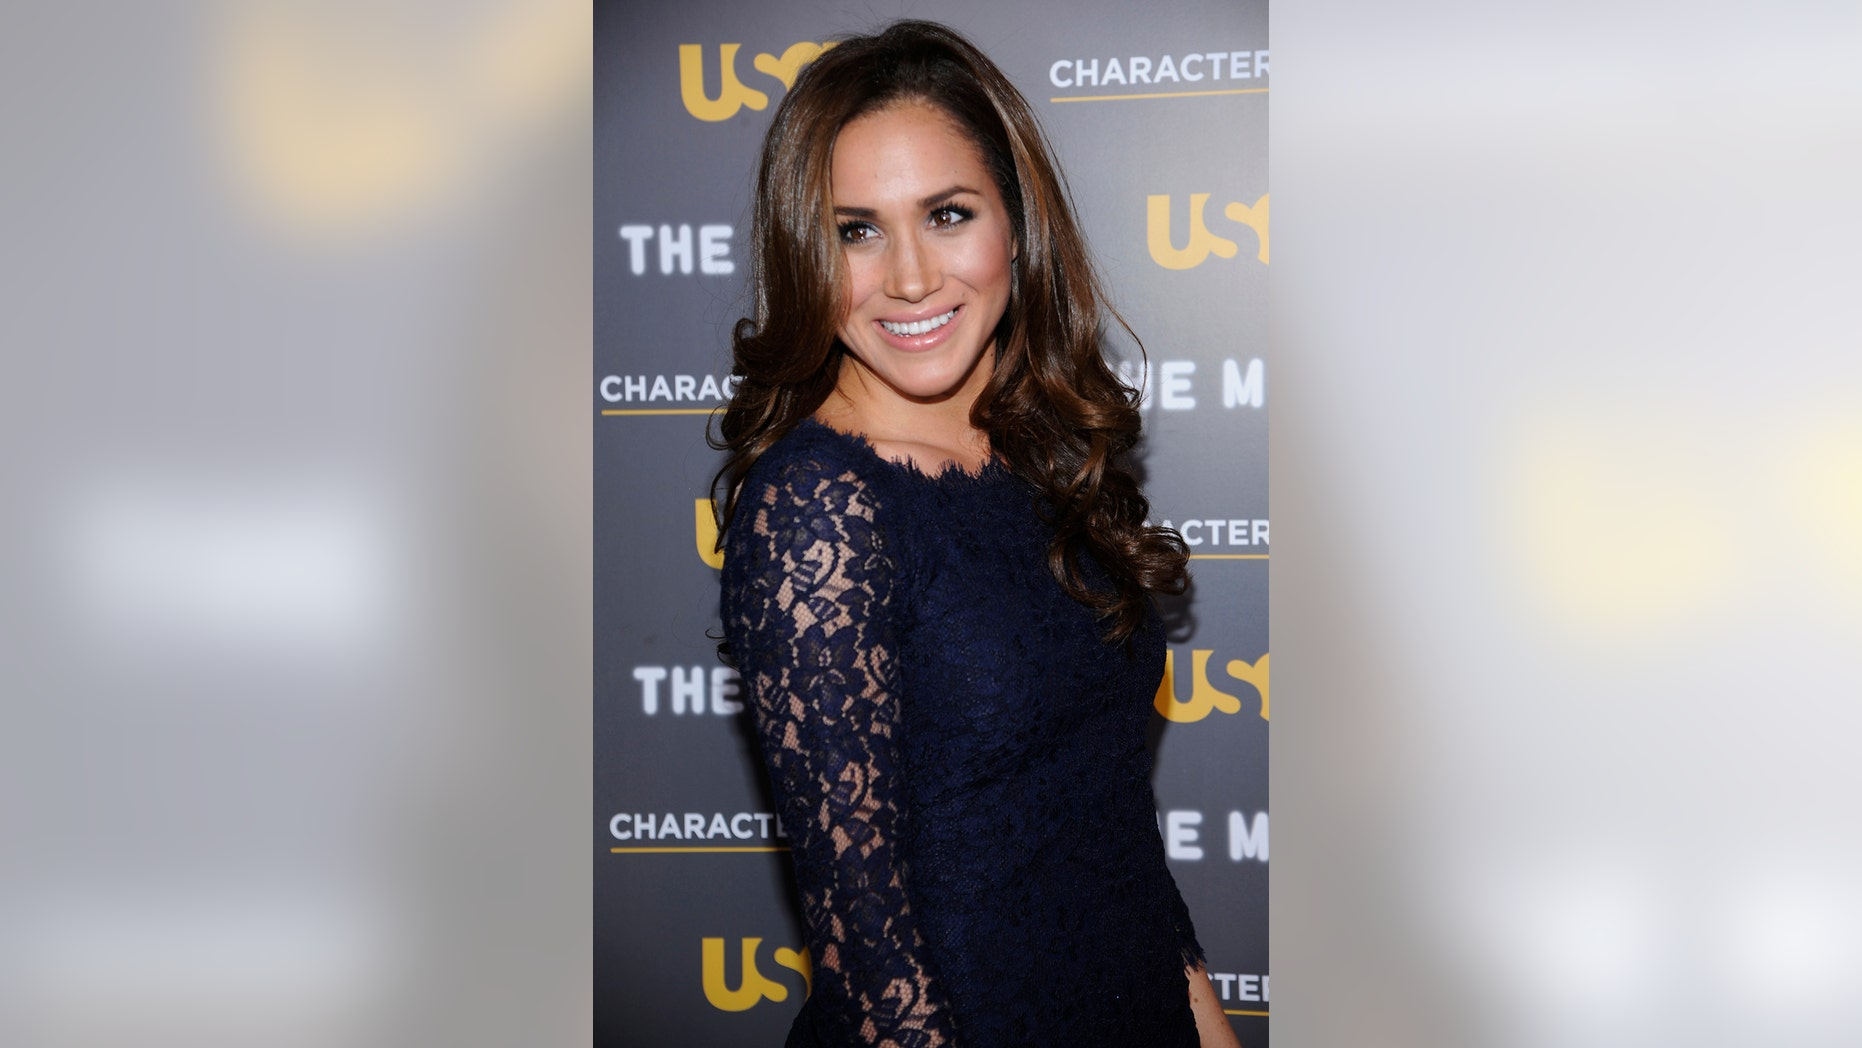 """Meghan Markle may reportedly leave USA's """"Suits"""" for a new life in London with her boyfriend, Britain's Prince Harry."""